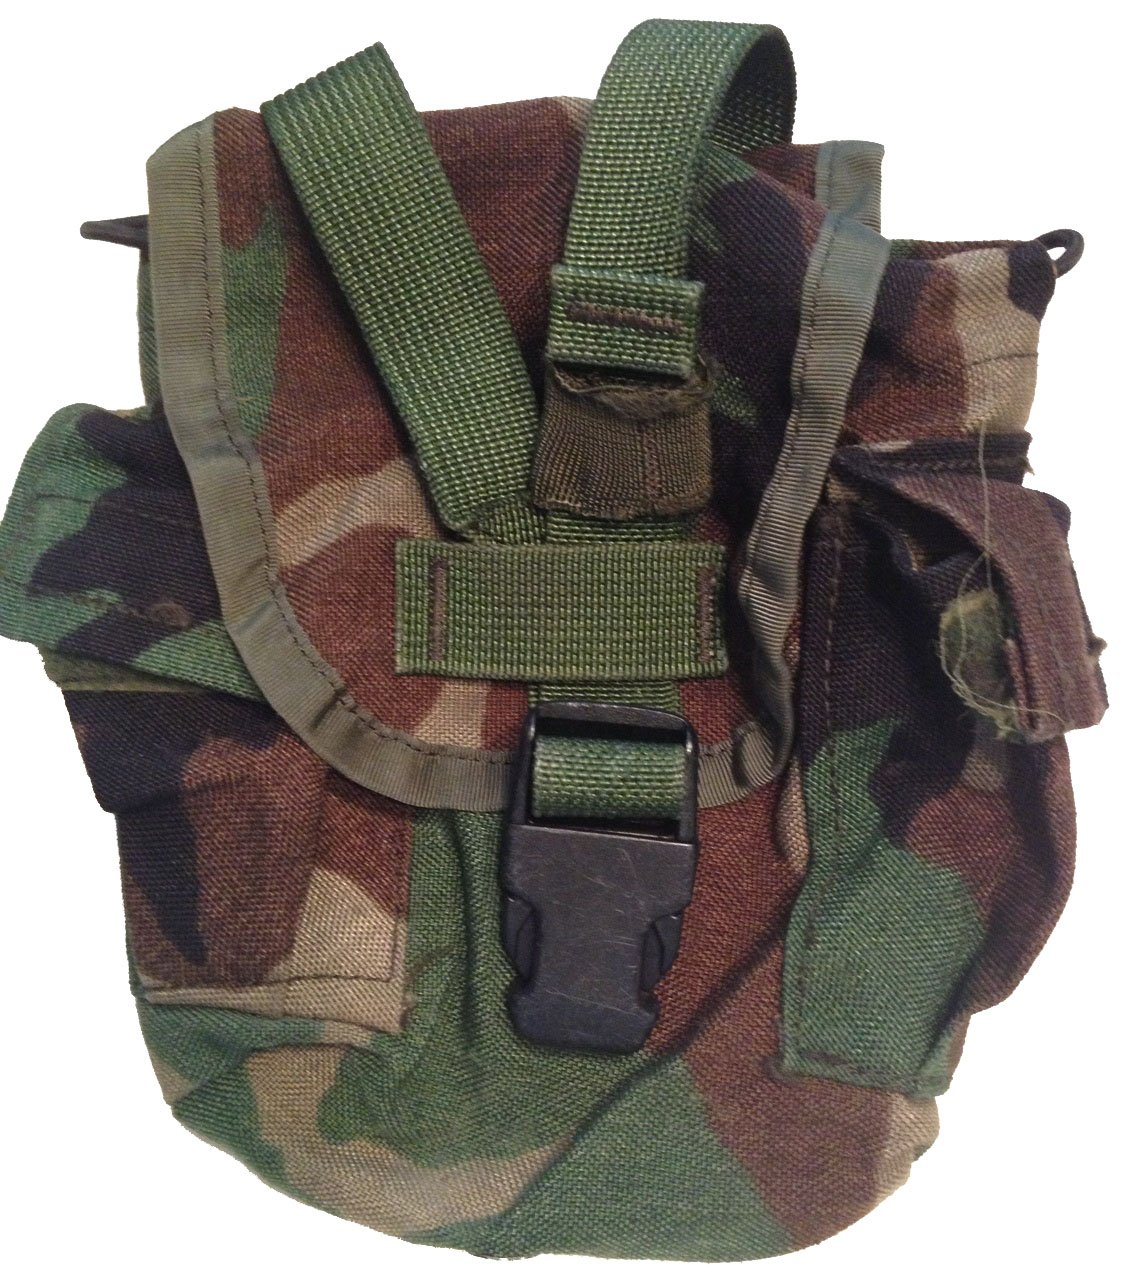 Military Outdoor Clothing Never Issued Olive Drab 1 quart Canteen with Previously Issued US G.I. Woodland Canteen Cover